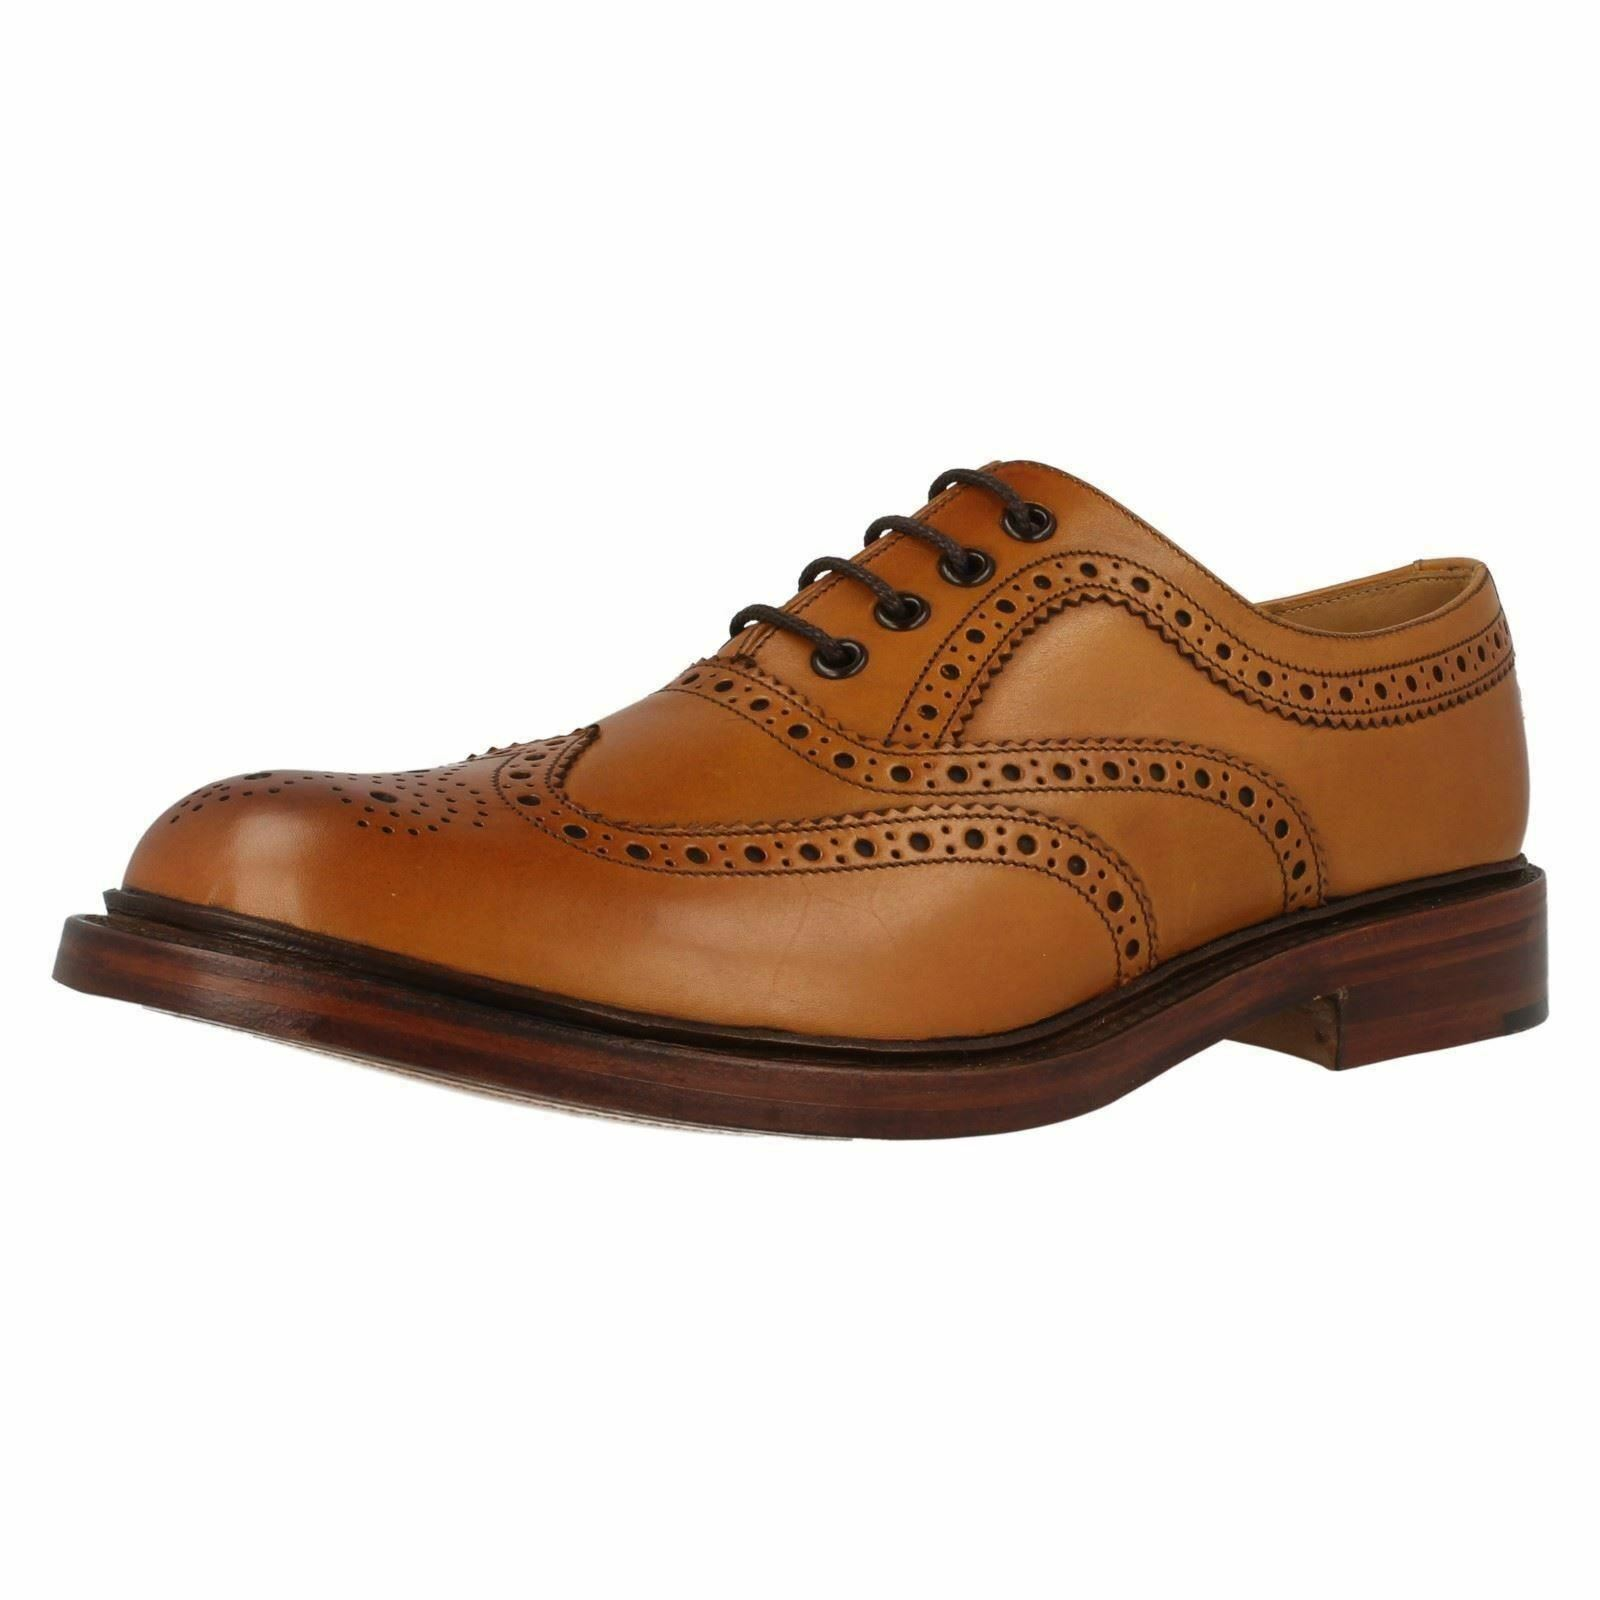 Loake 1880 Ashby Tan Burnished Leather Heavy Country Brogue Lace Up schuhe